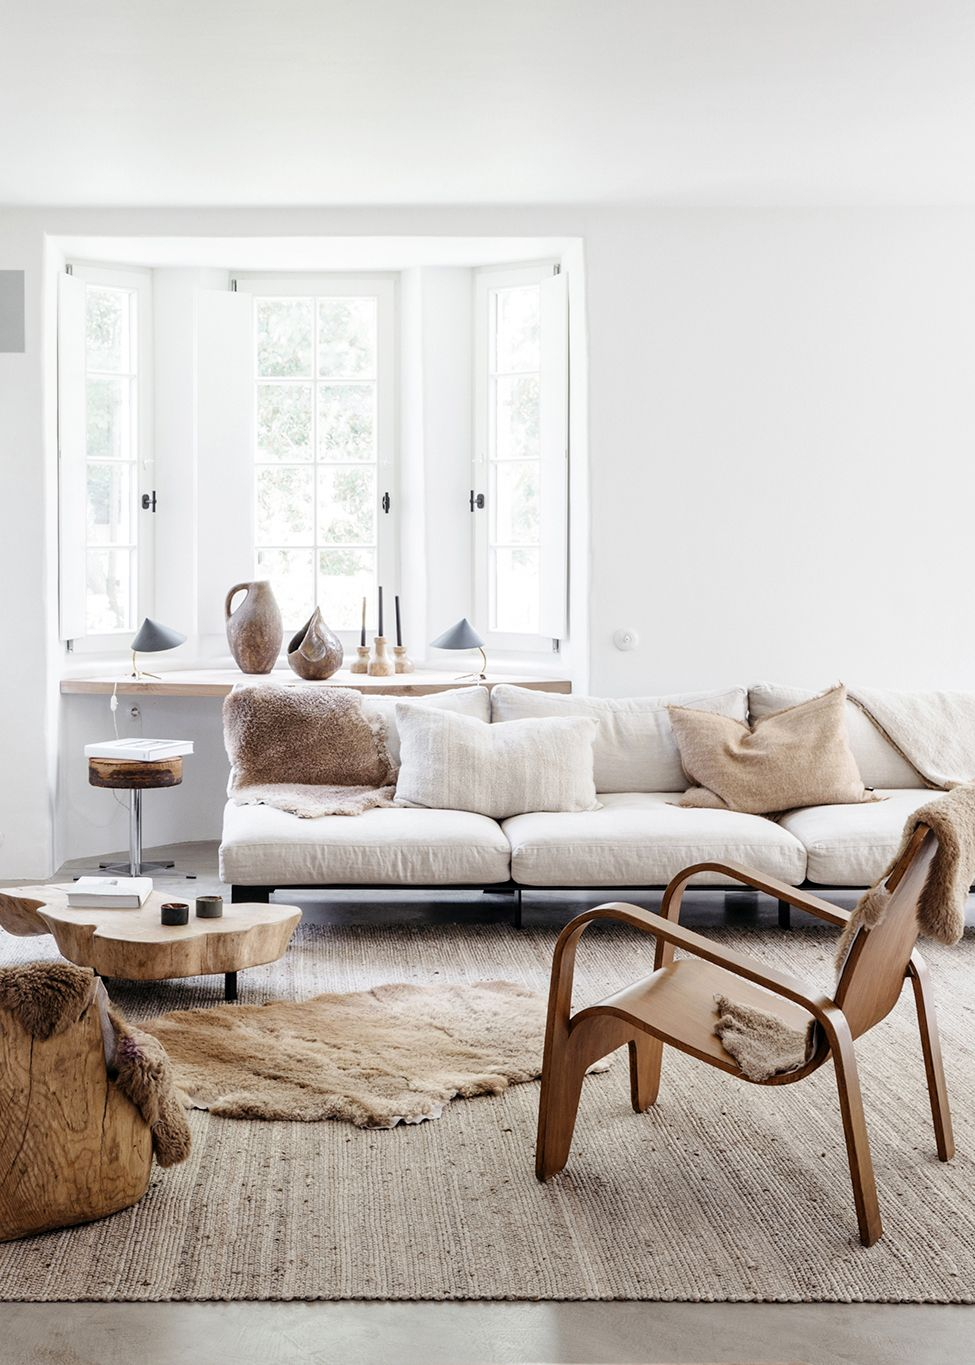 Photo of House Tour :: This Belgian Home Is The Perfect Cozy, Clean Slate for Winter – Wohnidee by WOONIO